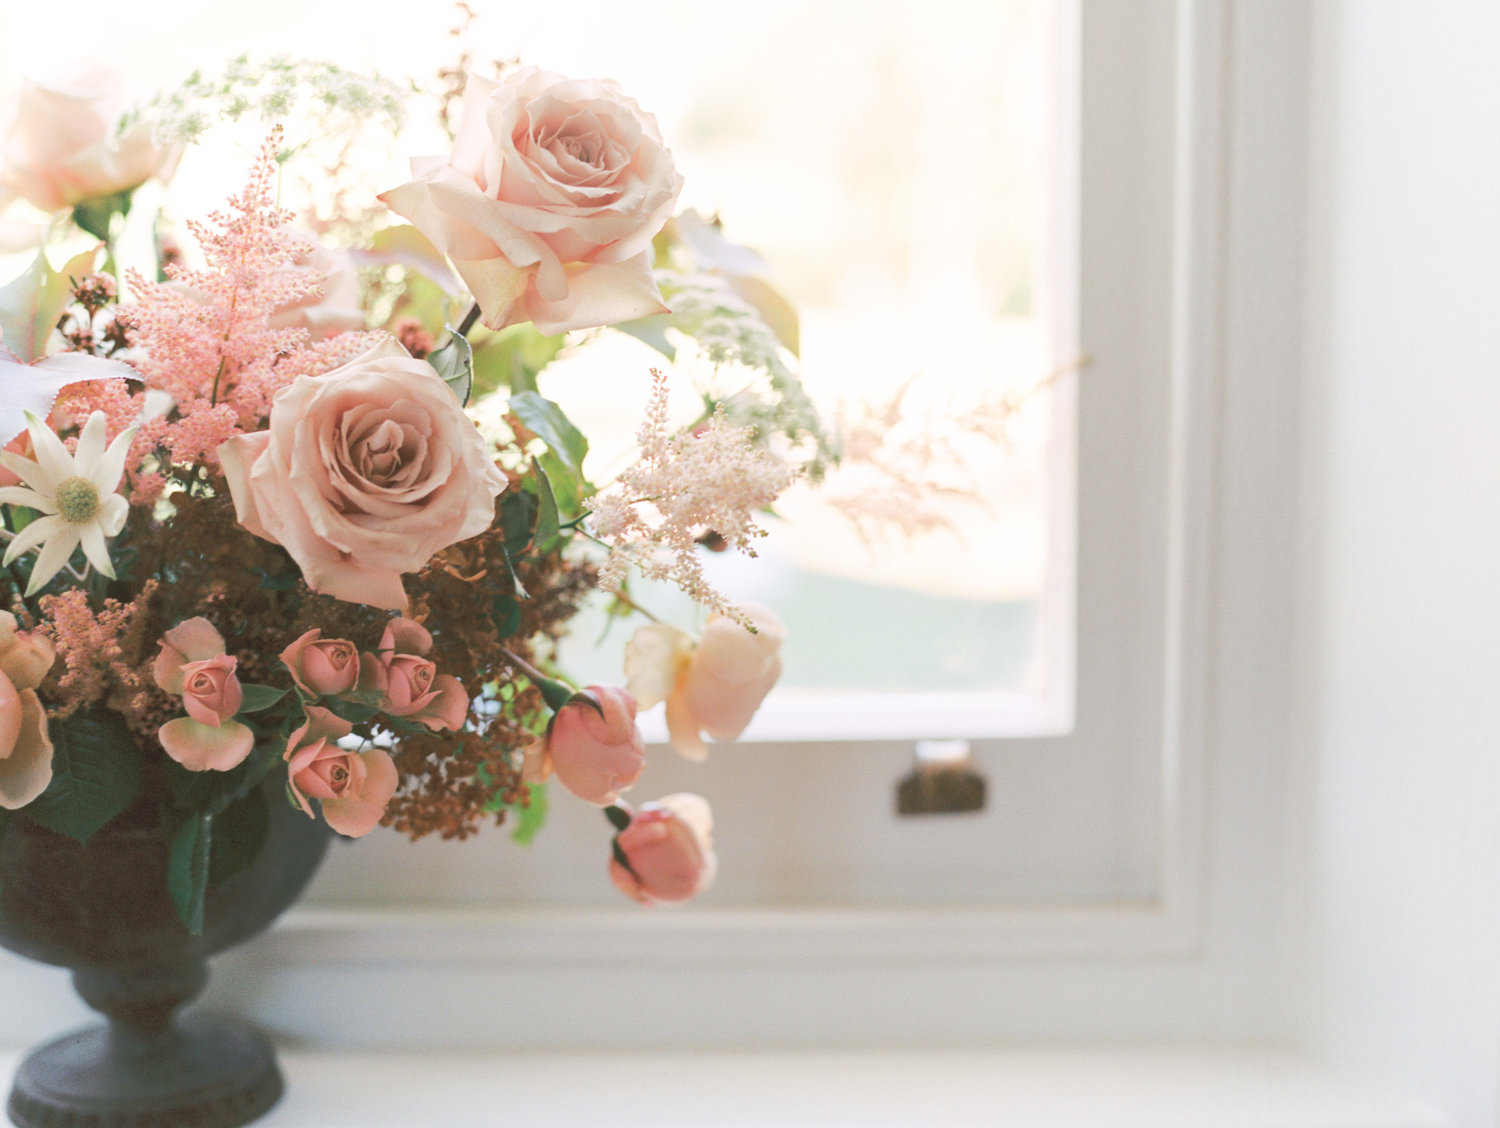 Hopewood House - Romantic Winter Wedding Shoot - Lilli Kad Photography - Shot - Florals Residence.jpeg